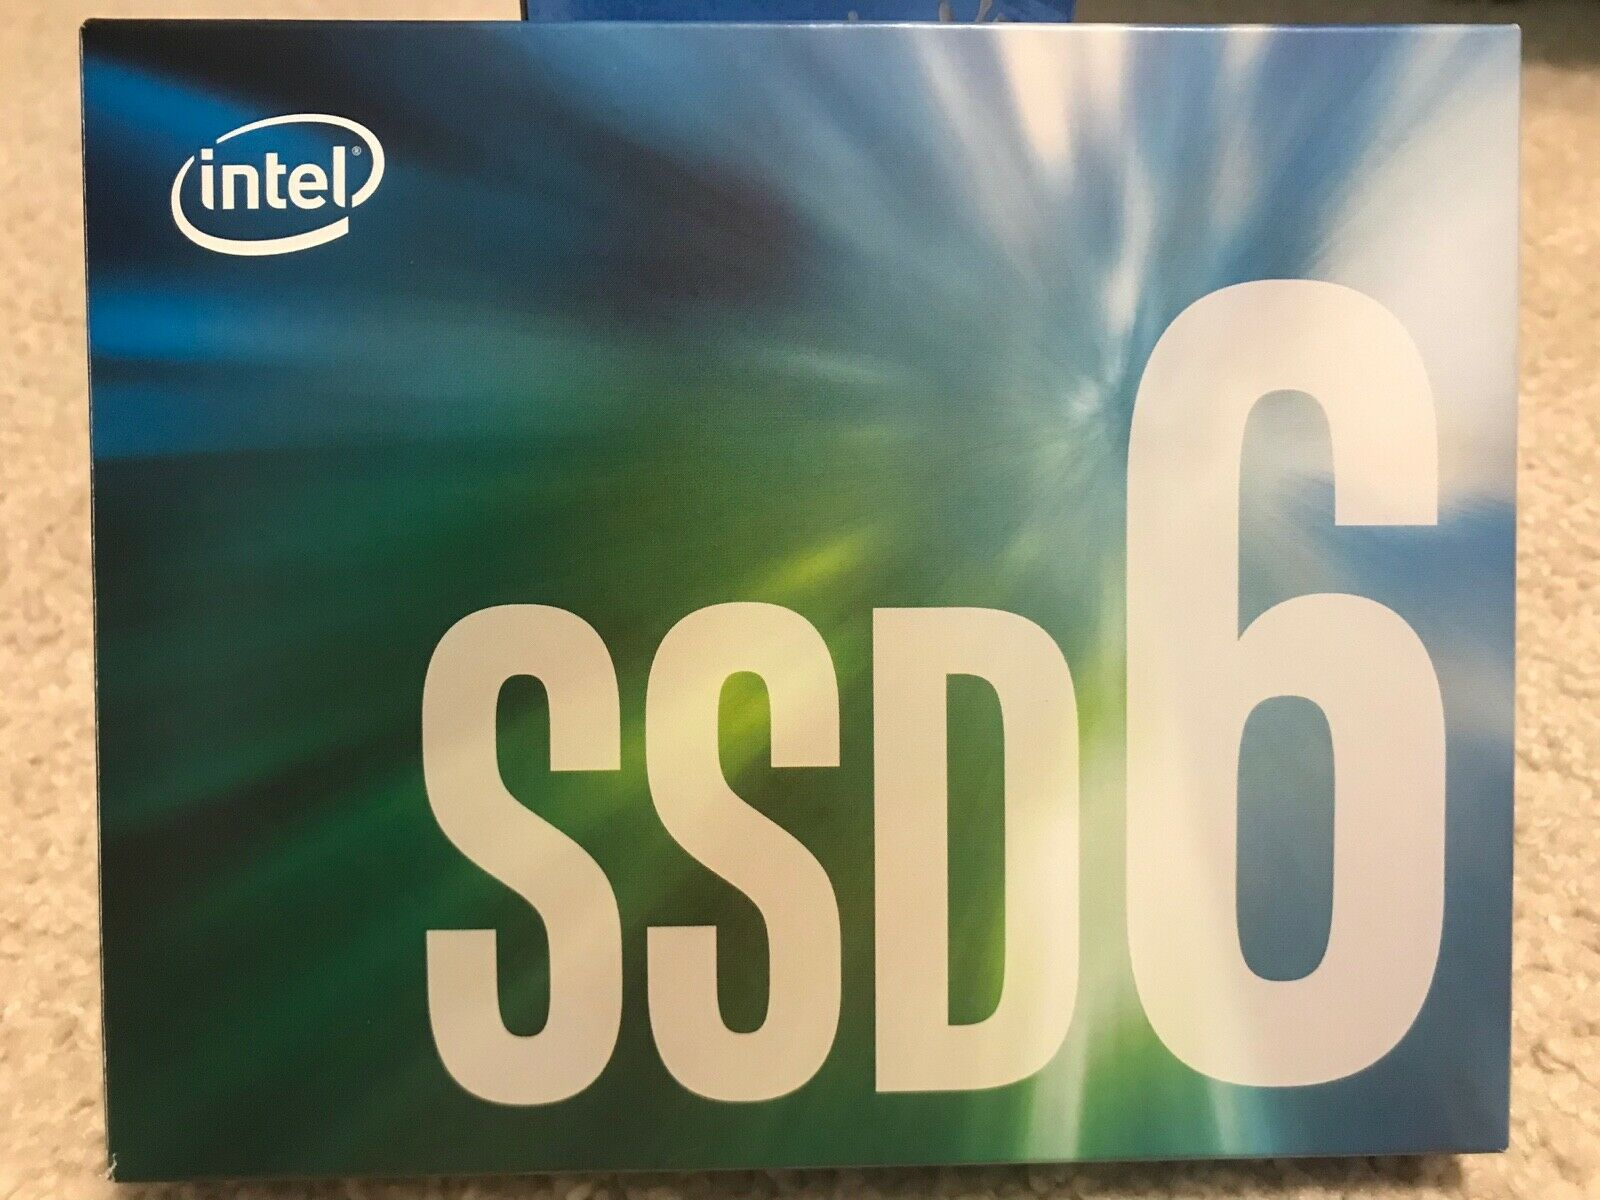 Intel Solid State Drive (SSD6) 1024GB SSDPEKNW010T9X1 660p Series. Buy it now for 89.99